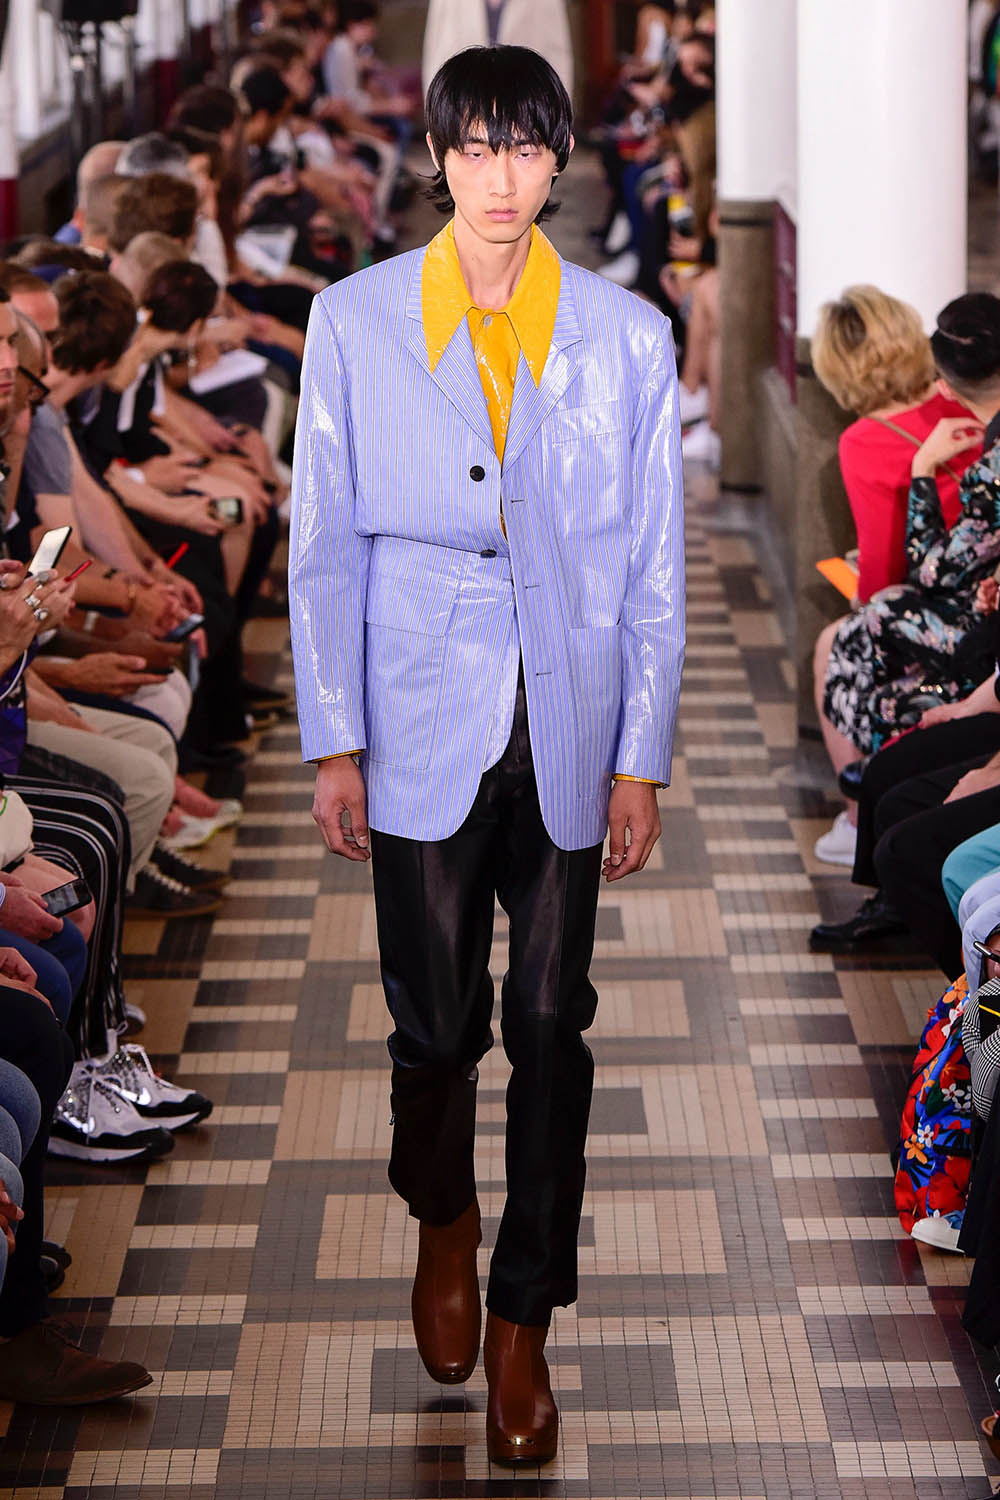 Wooyoungmi Paris Fashion Week Men's SS19 - Sagaboi - Look 5